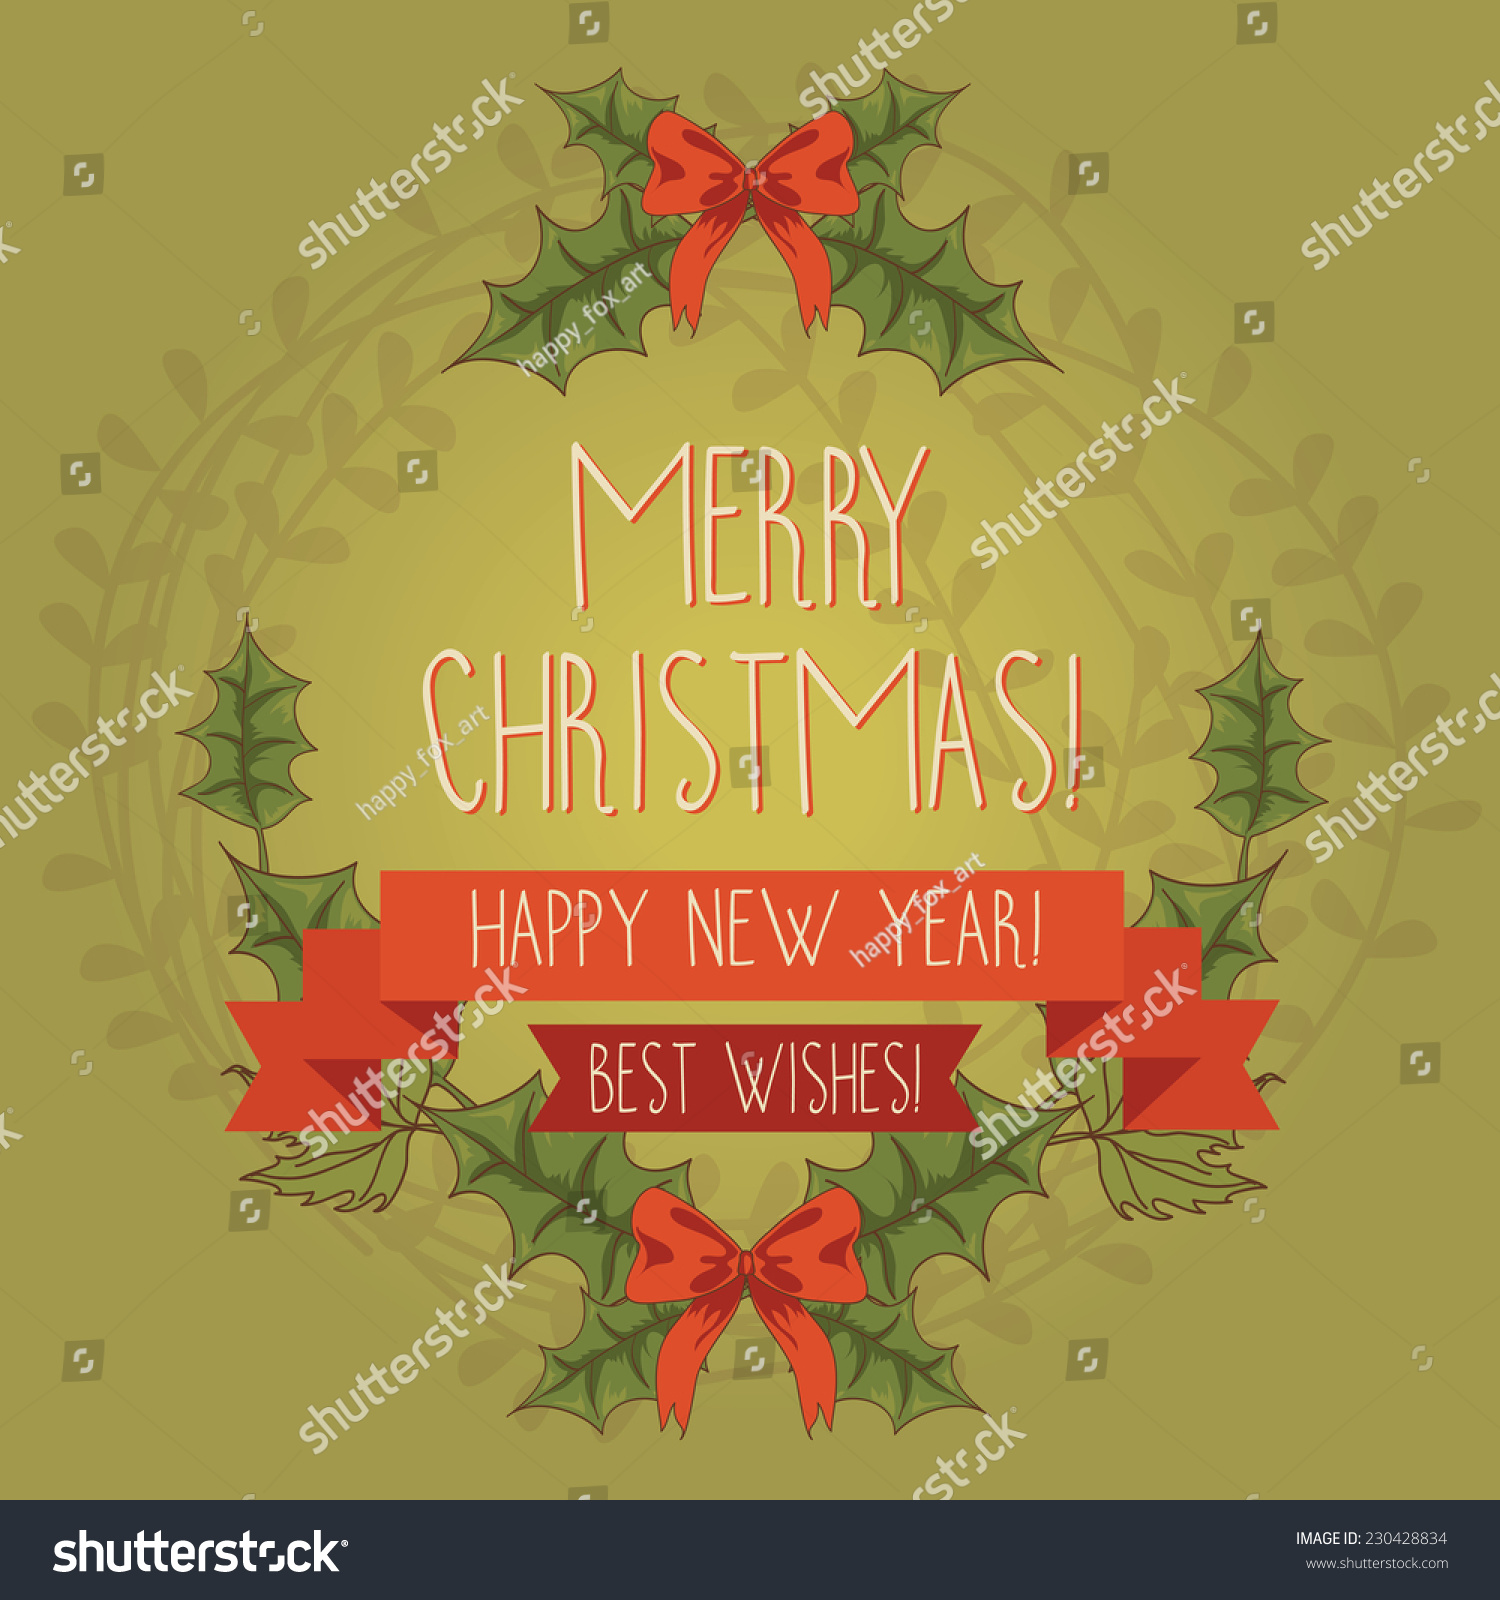 Why is holly a traditional christmas decoration - Christmas Greeting Card Vector Illustration Traditional Christmas Holly Wreath